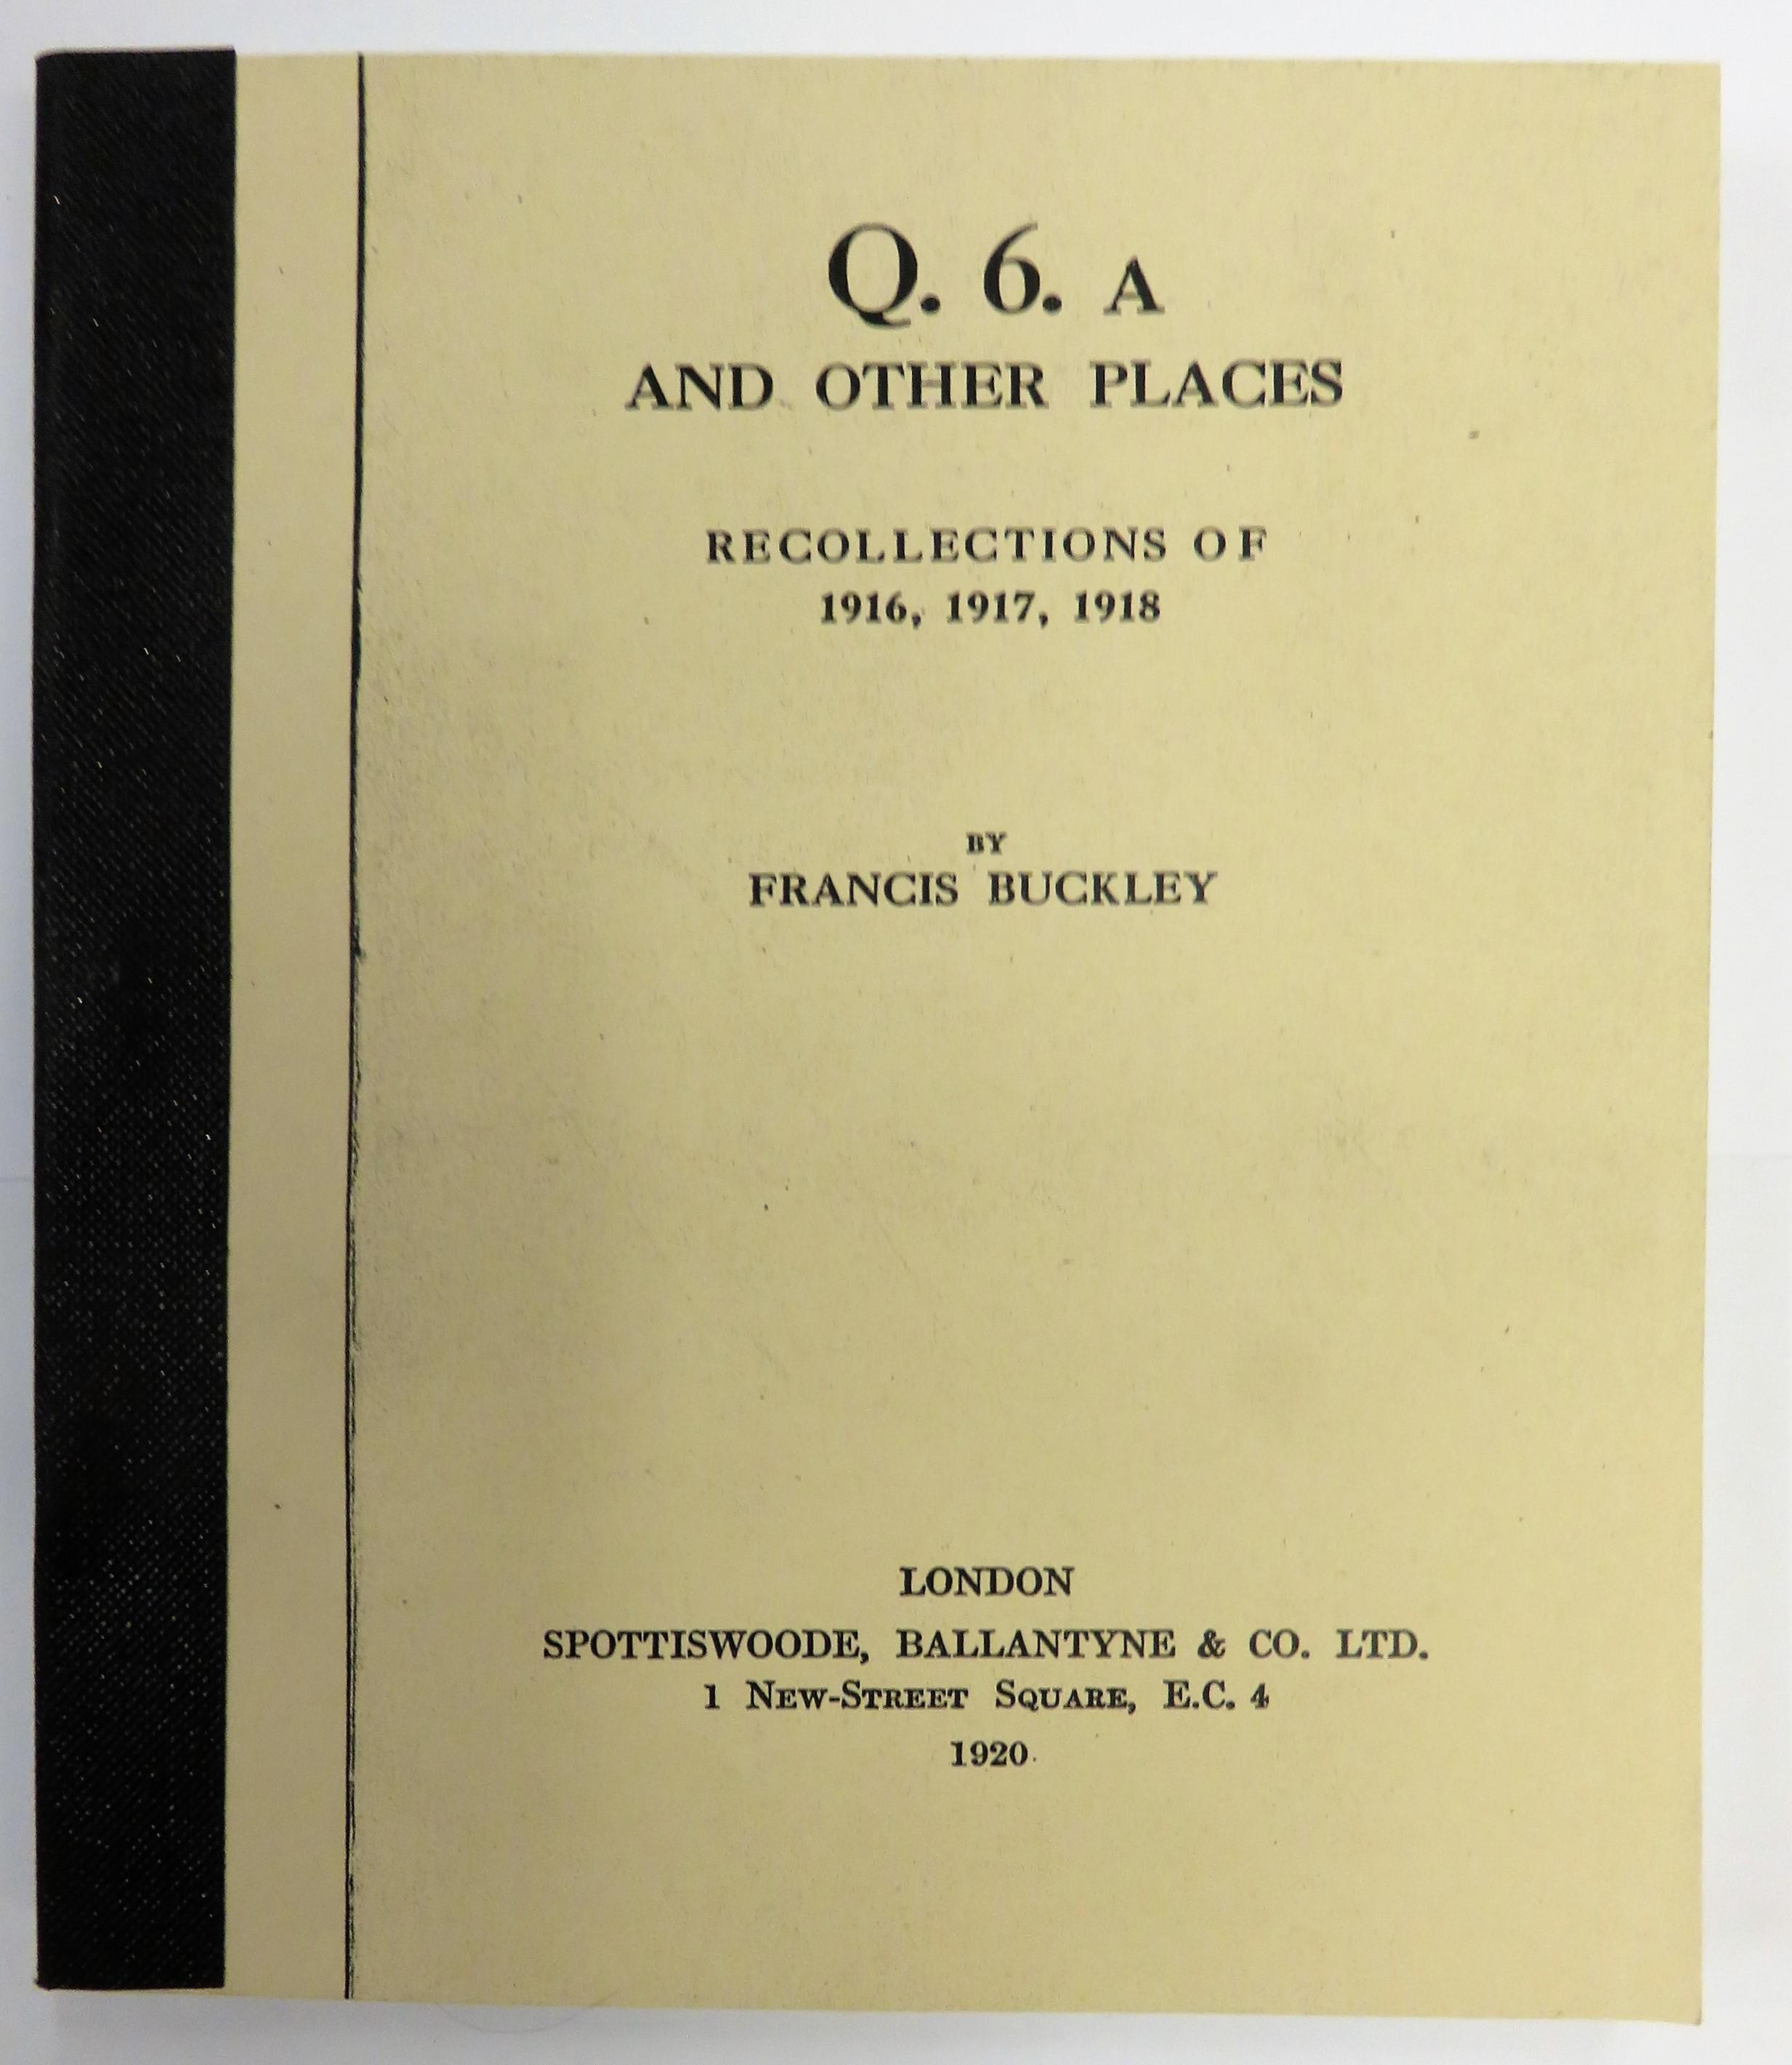 Q.6.A and Other Places